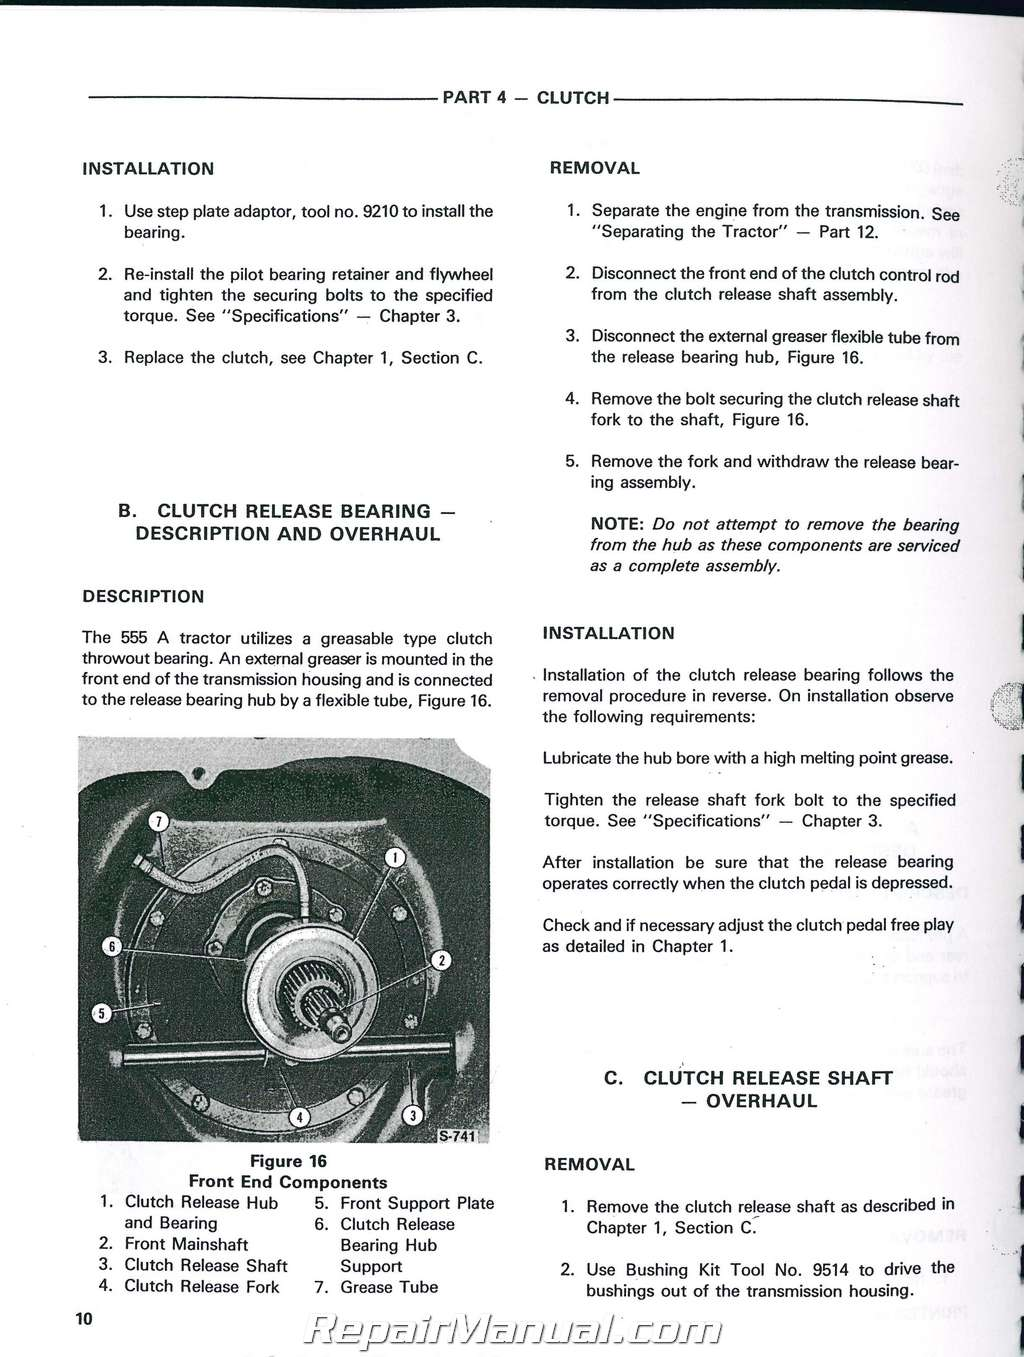 ford 555a 555b 655a tractor loader backhoe printed service manual rh repairmanual com Ford 555D Backhoe Manual Bradco Backhoe Manuals